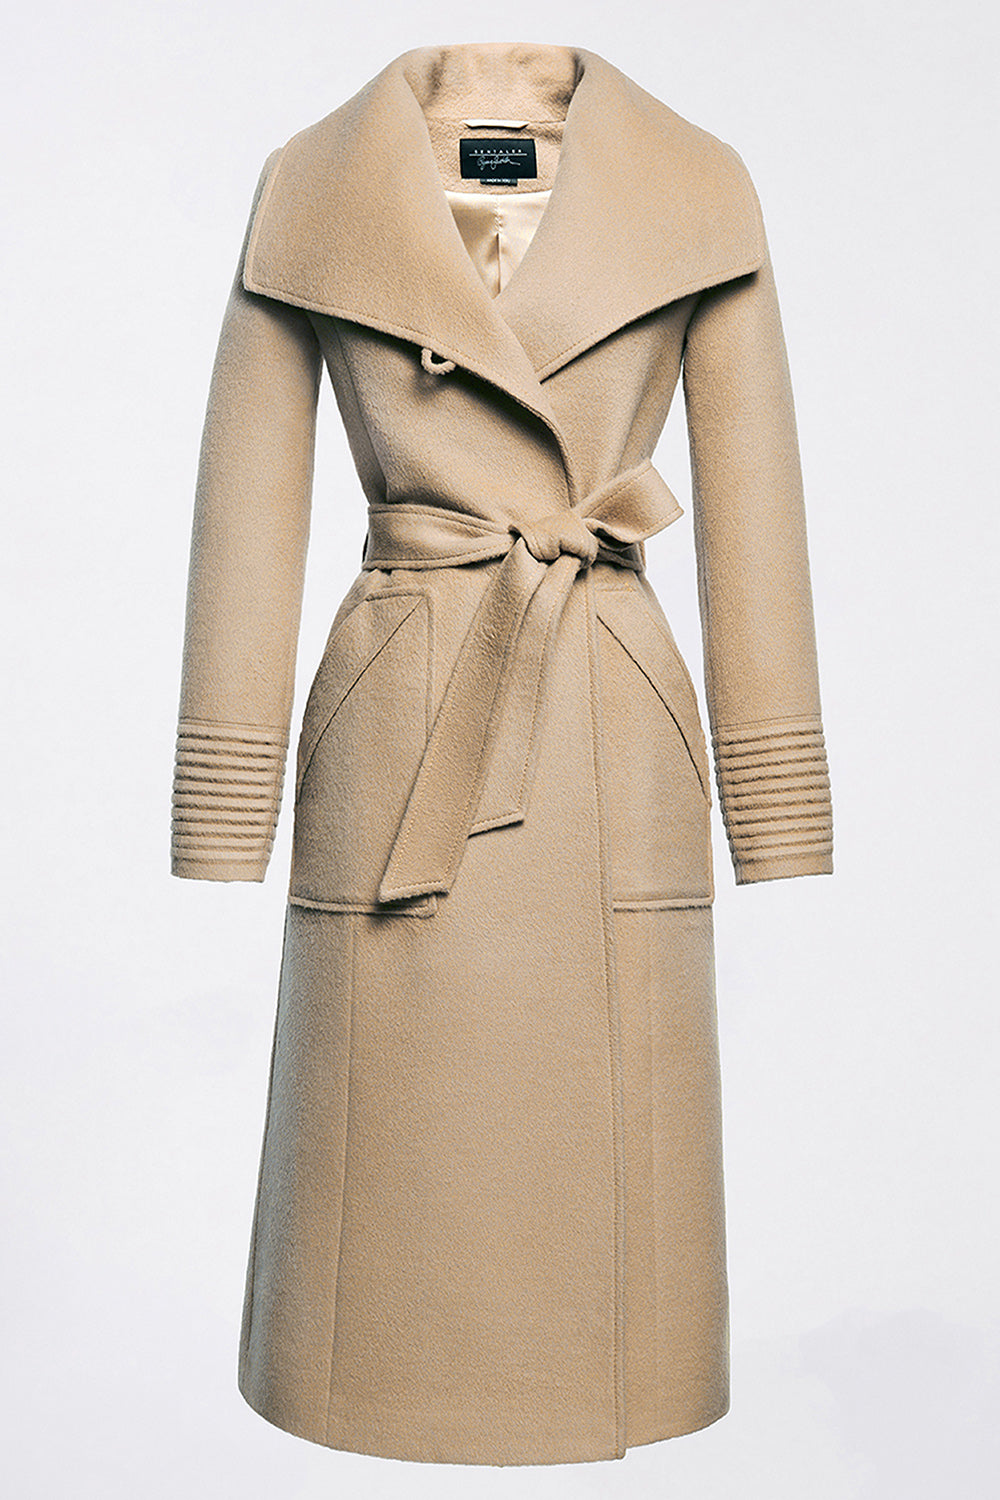 Sentaler Long Wide Collar Wrap Coat featured in Baby Alpaca and available in Camel. Seen off model.